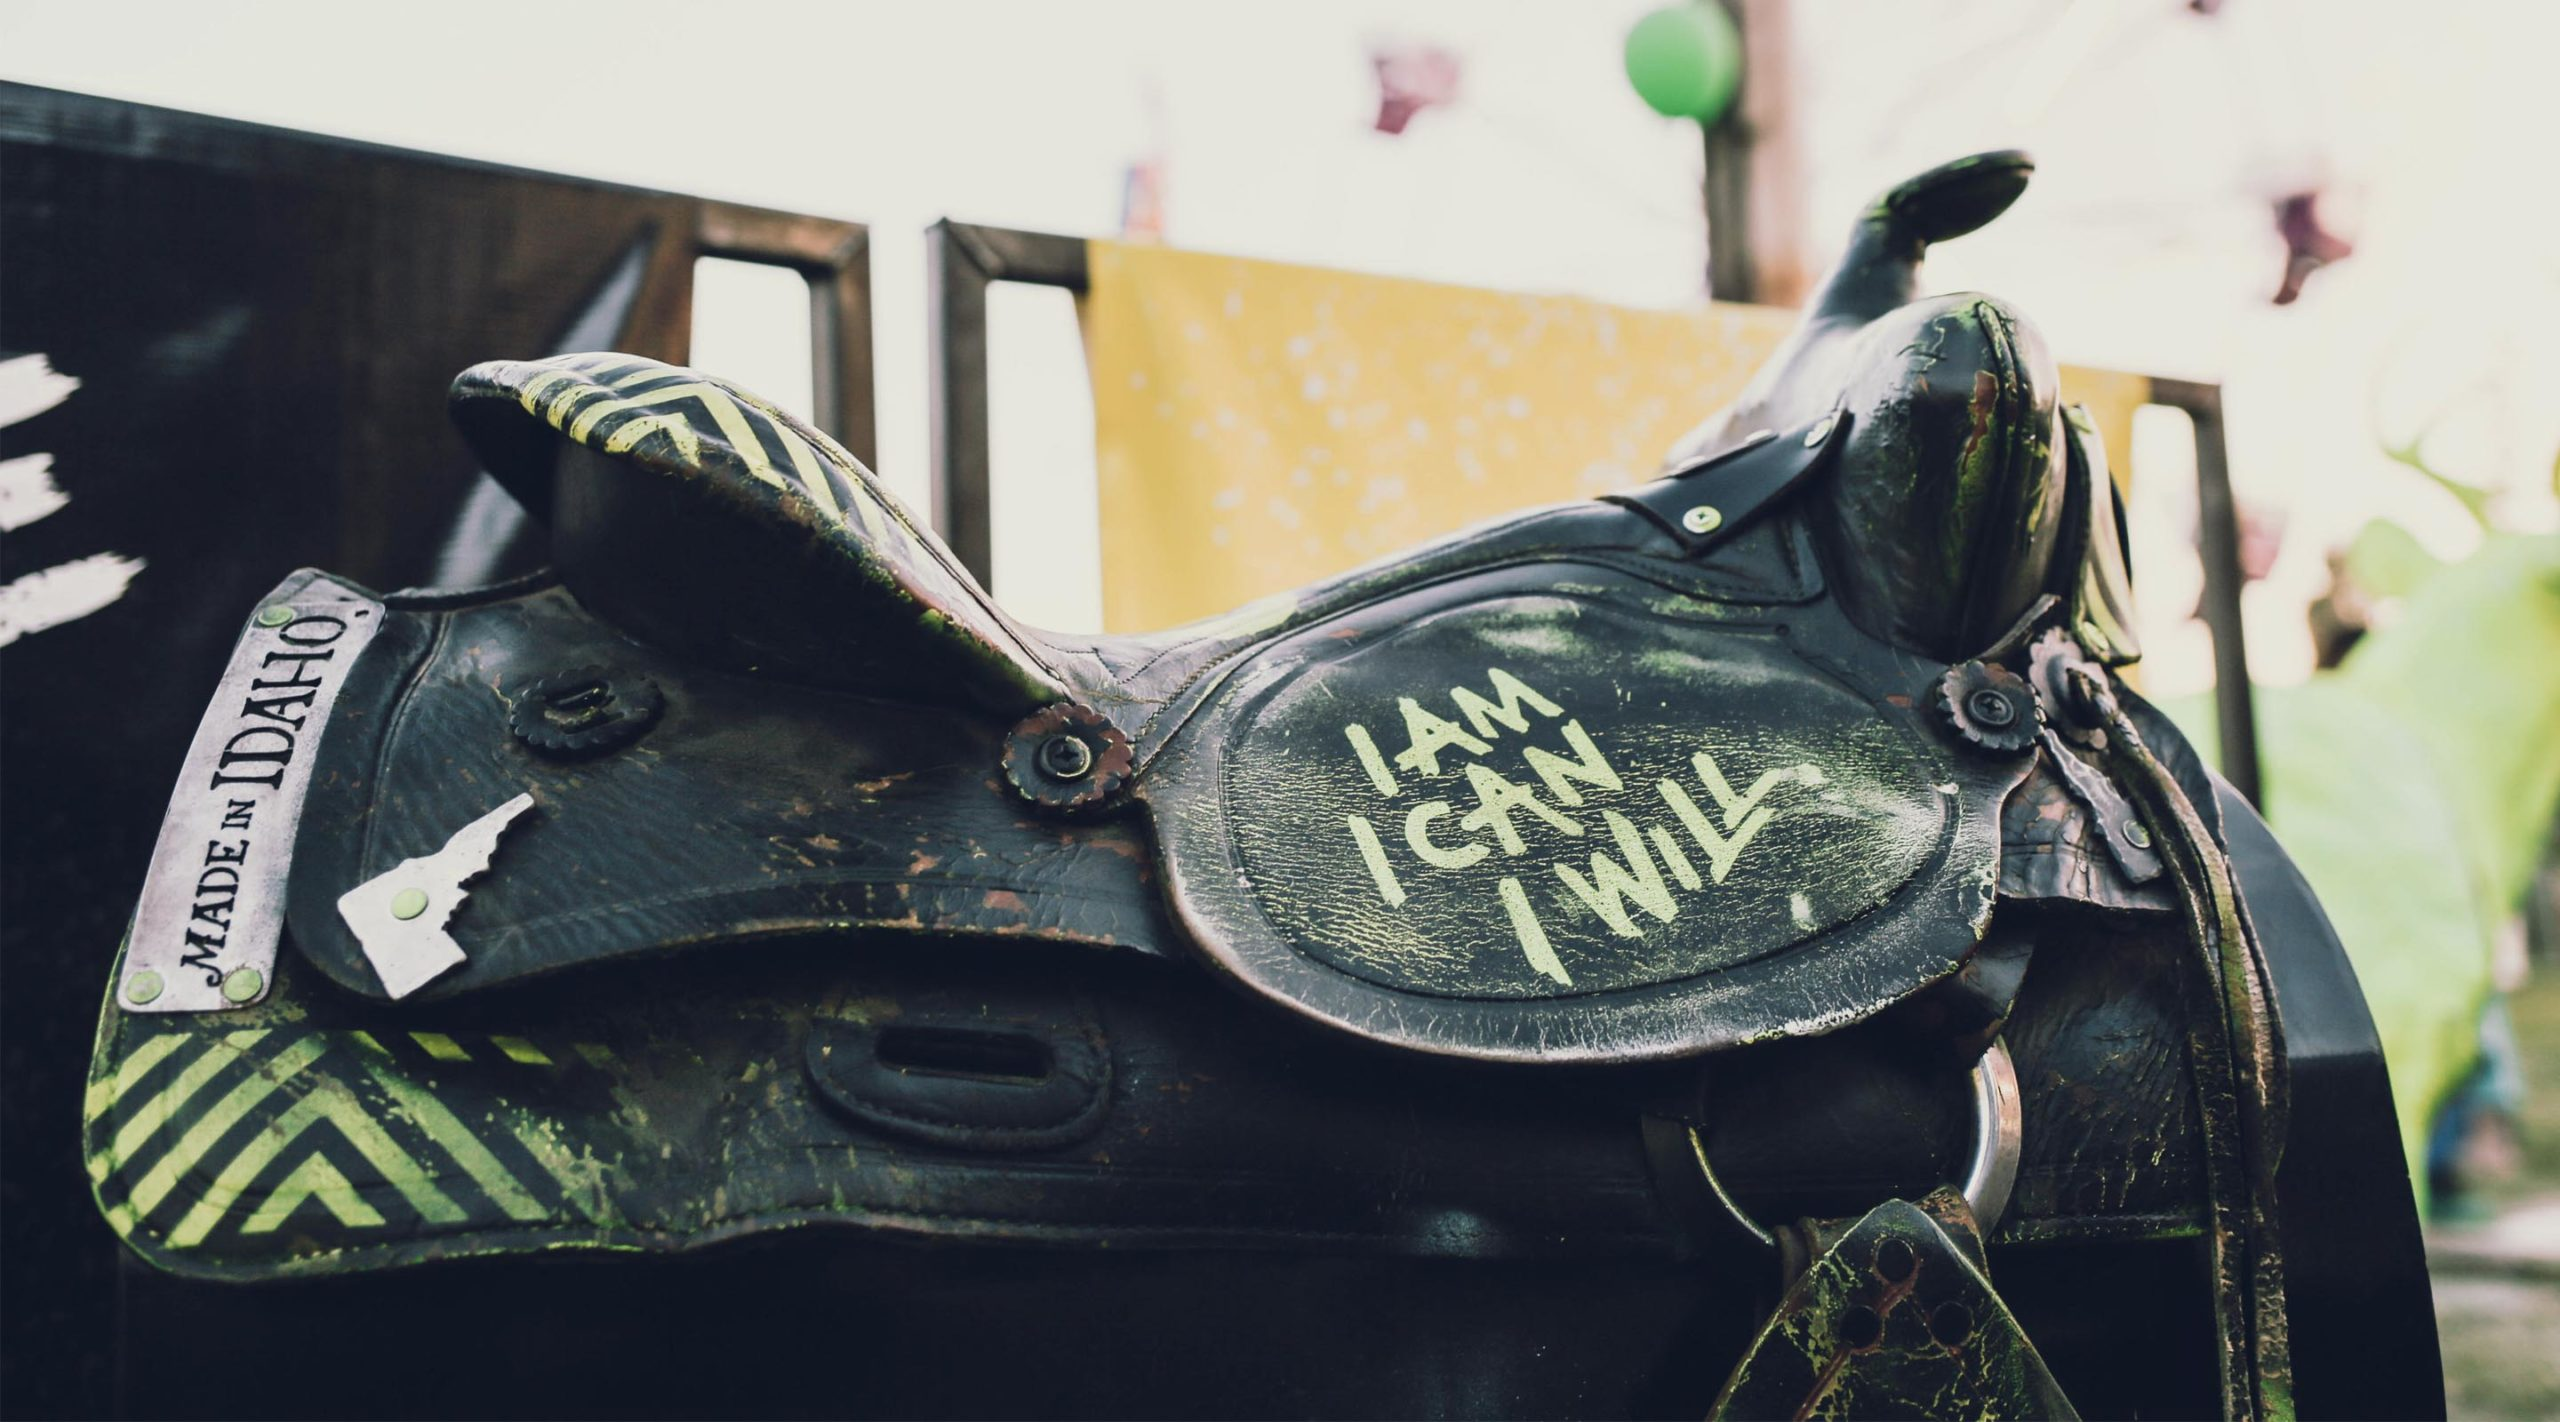 Black saddle with I AM, I CAN, I WILL painted on it in yellow